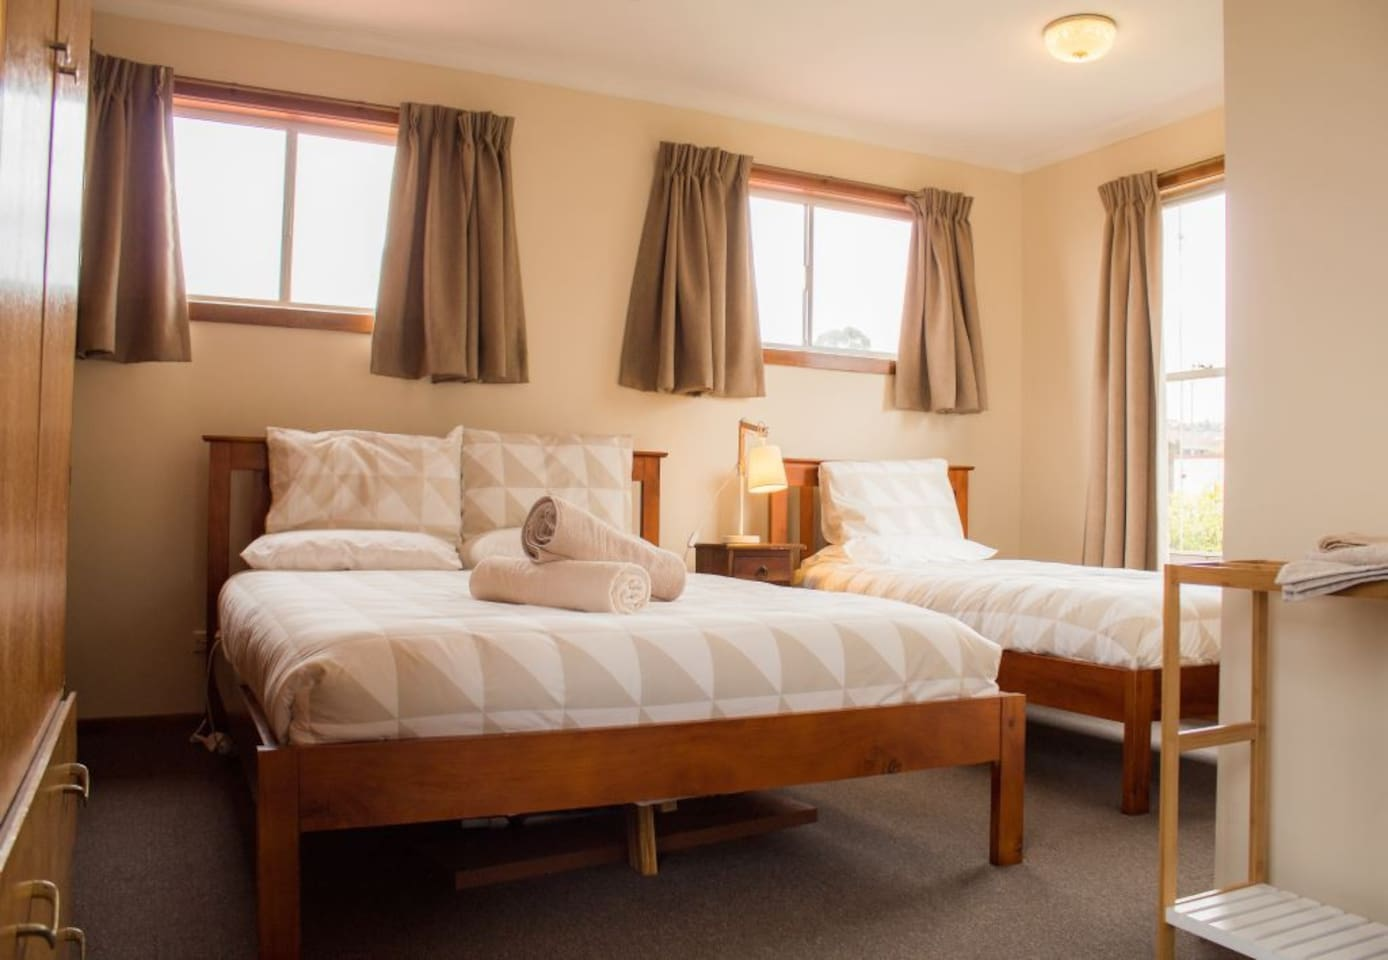 Spacious bedroom with 1 x queen size and 1 x single beds. Electric blankets on each bed.